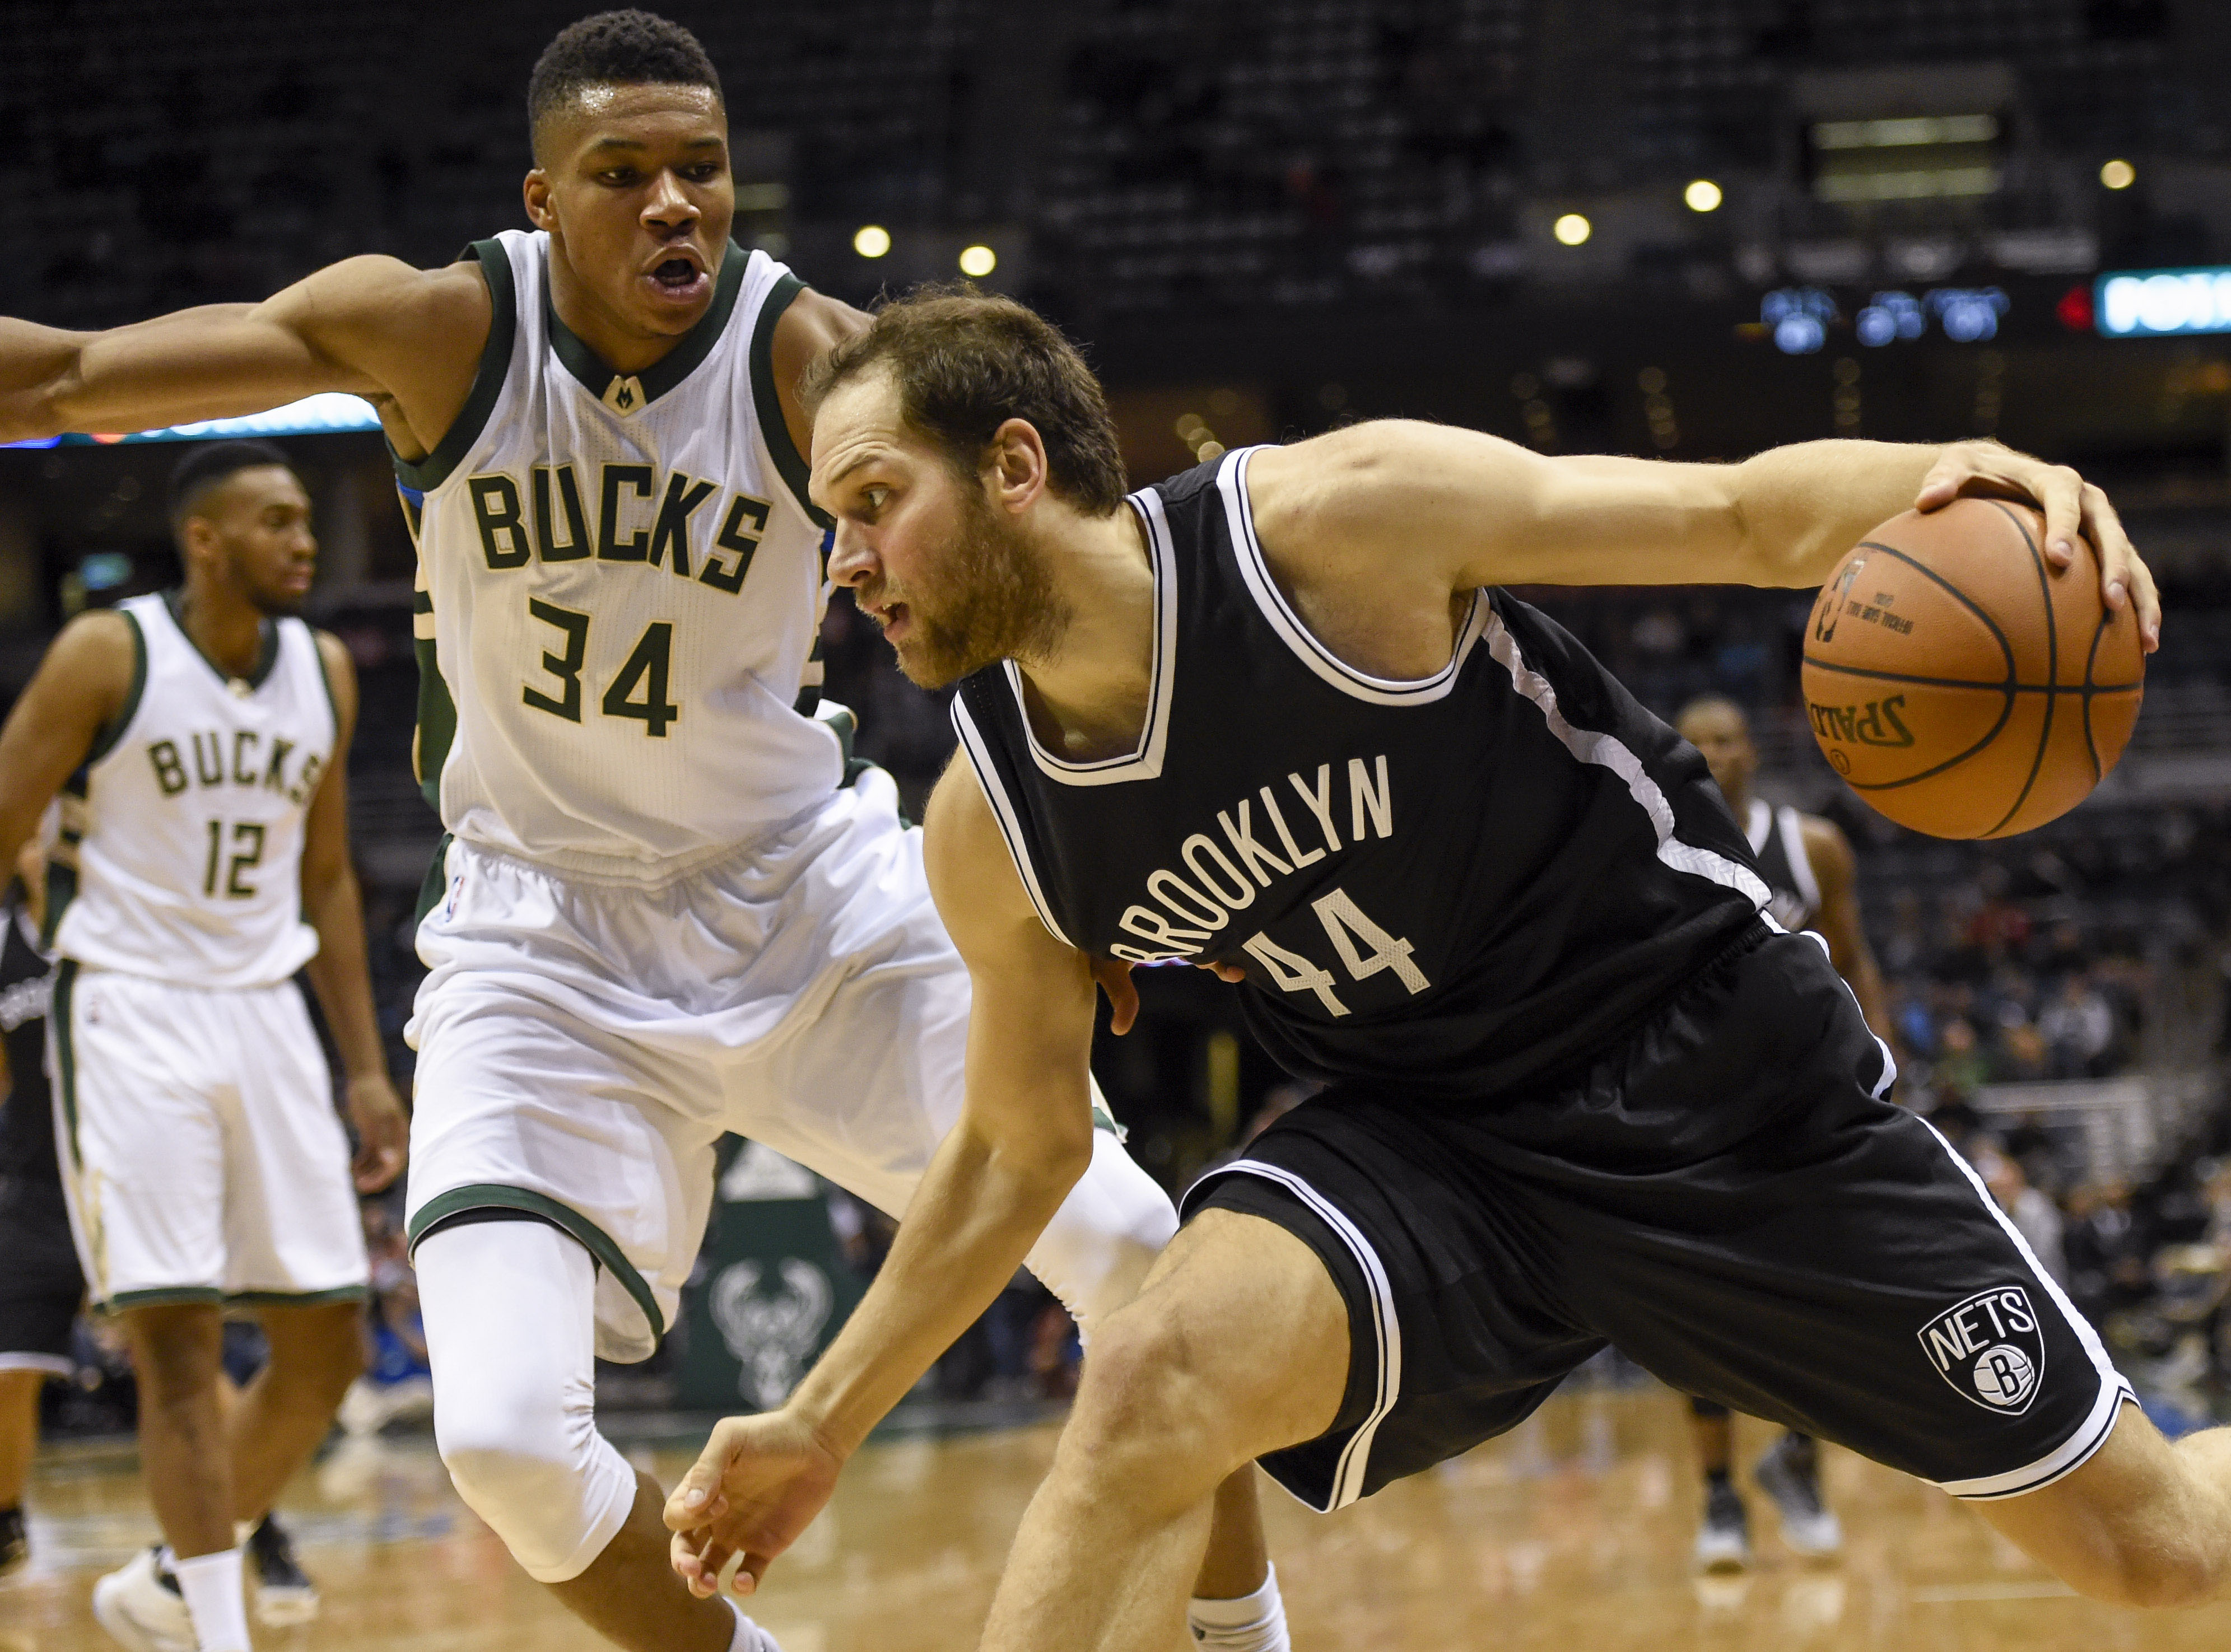 Oct 29, 2016; Milwaukee, WI, USA; Brooklyn Nets guard Bojan Bogdanovic (44) dribbles the ball in front of Milwaukee Bucks forward Giannis Antetokounmpo (34) in the fourth quarter at BMO Harris Bradley Center. Mandatory Credit: Benny Sieu-USA TODAY Sports